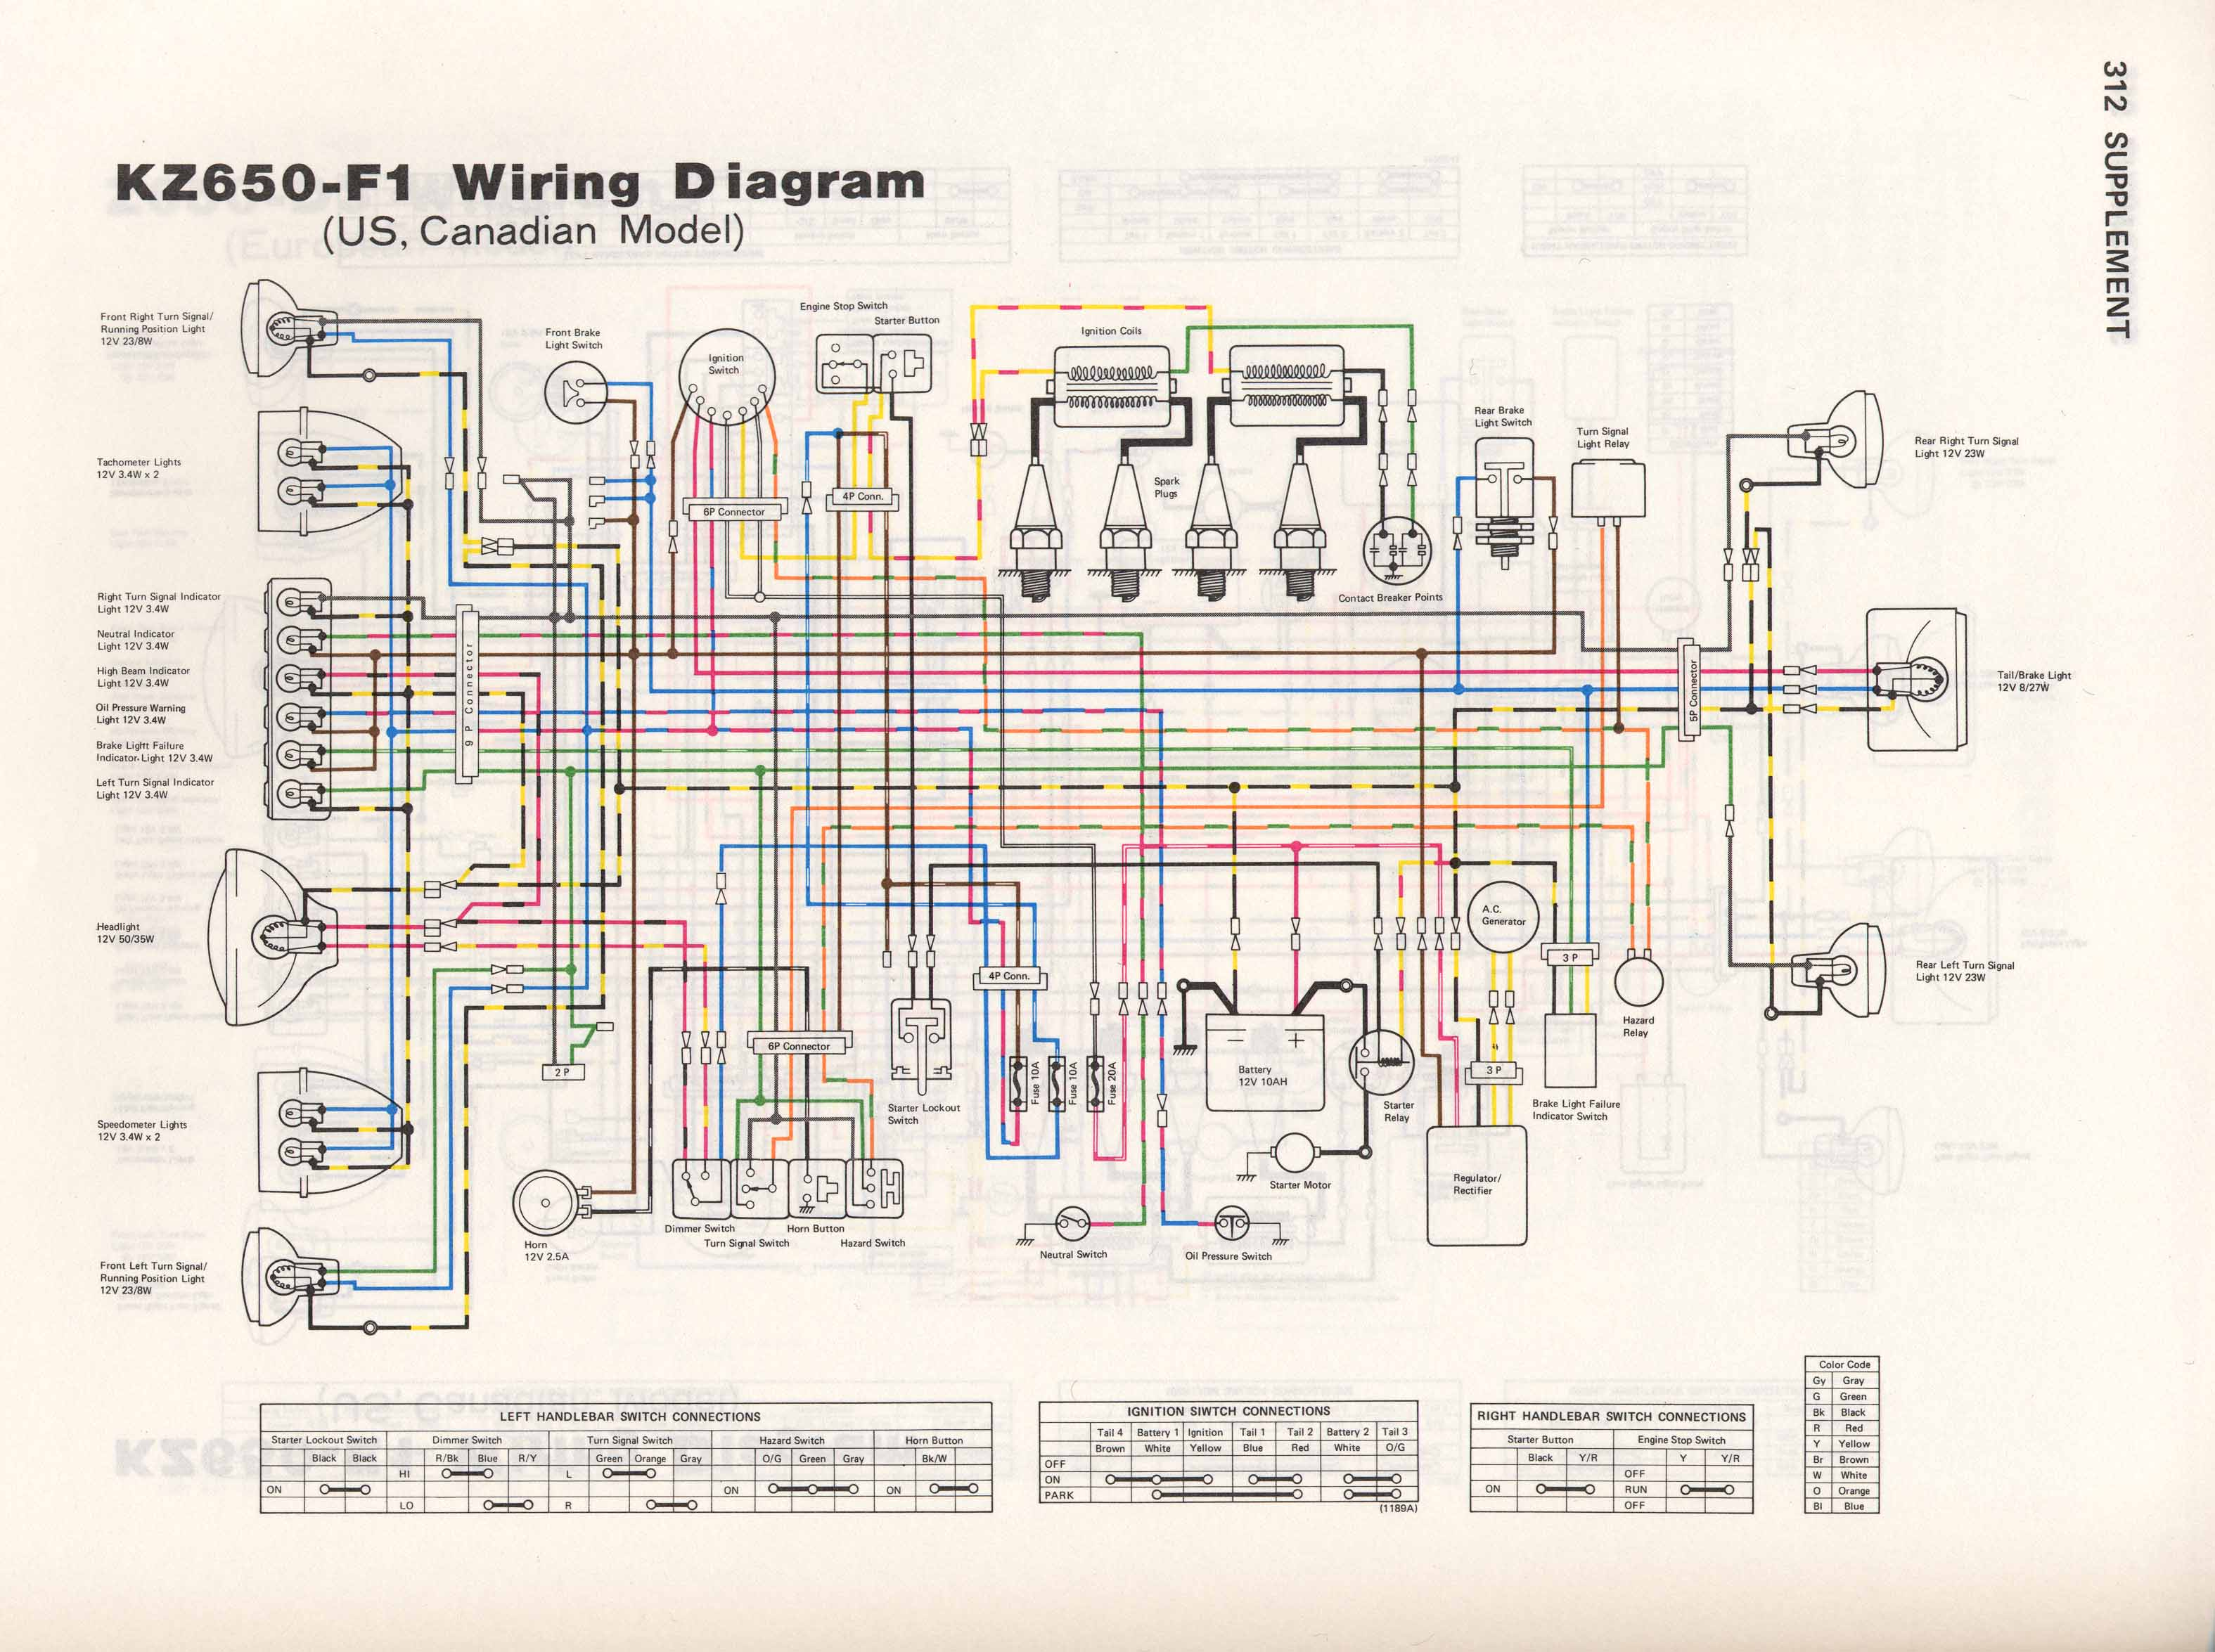 KZ650 F1 1983 kawasaki wiring diagram wiring diagram data